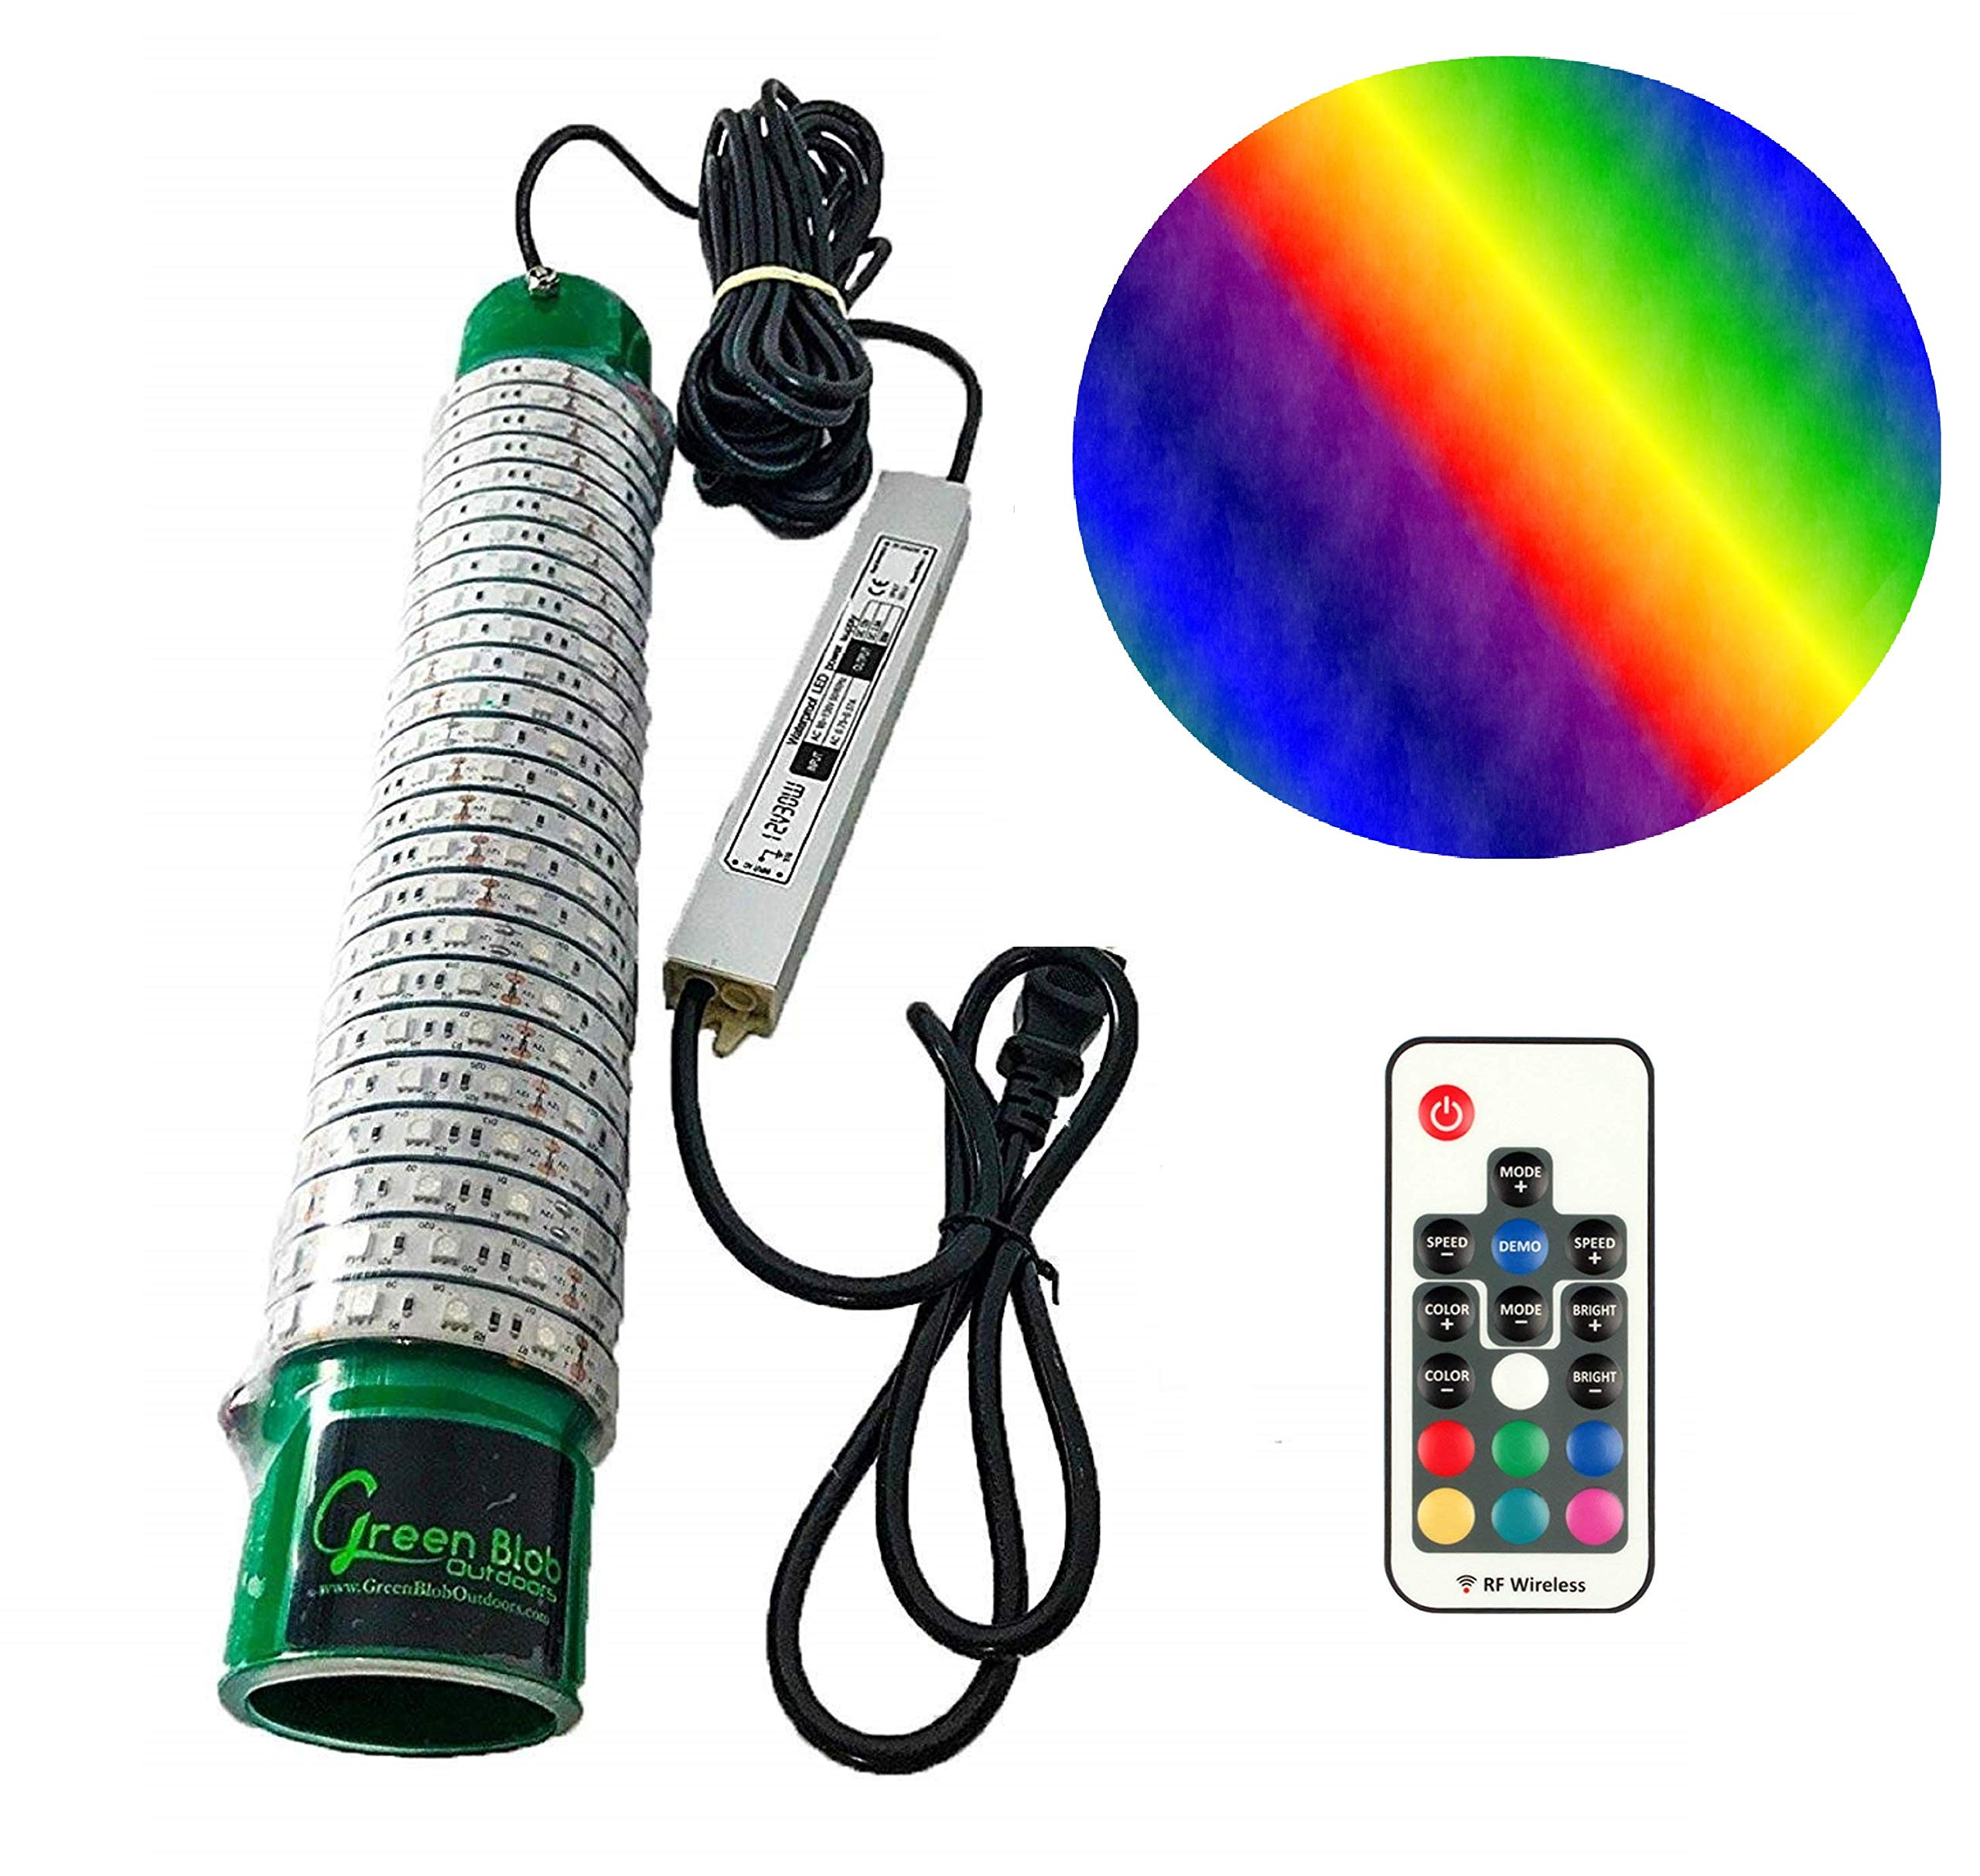 (Green, Blue, or White) Blob Underwater 110 Volt Dock Fishing Light BLOB-15000, 15000 Lumen, LED Fish Finding System Light with 30ft Power Cord, Bait rig, Fish attractant, Ponds (Multi-Color)